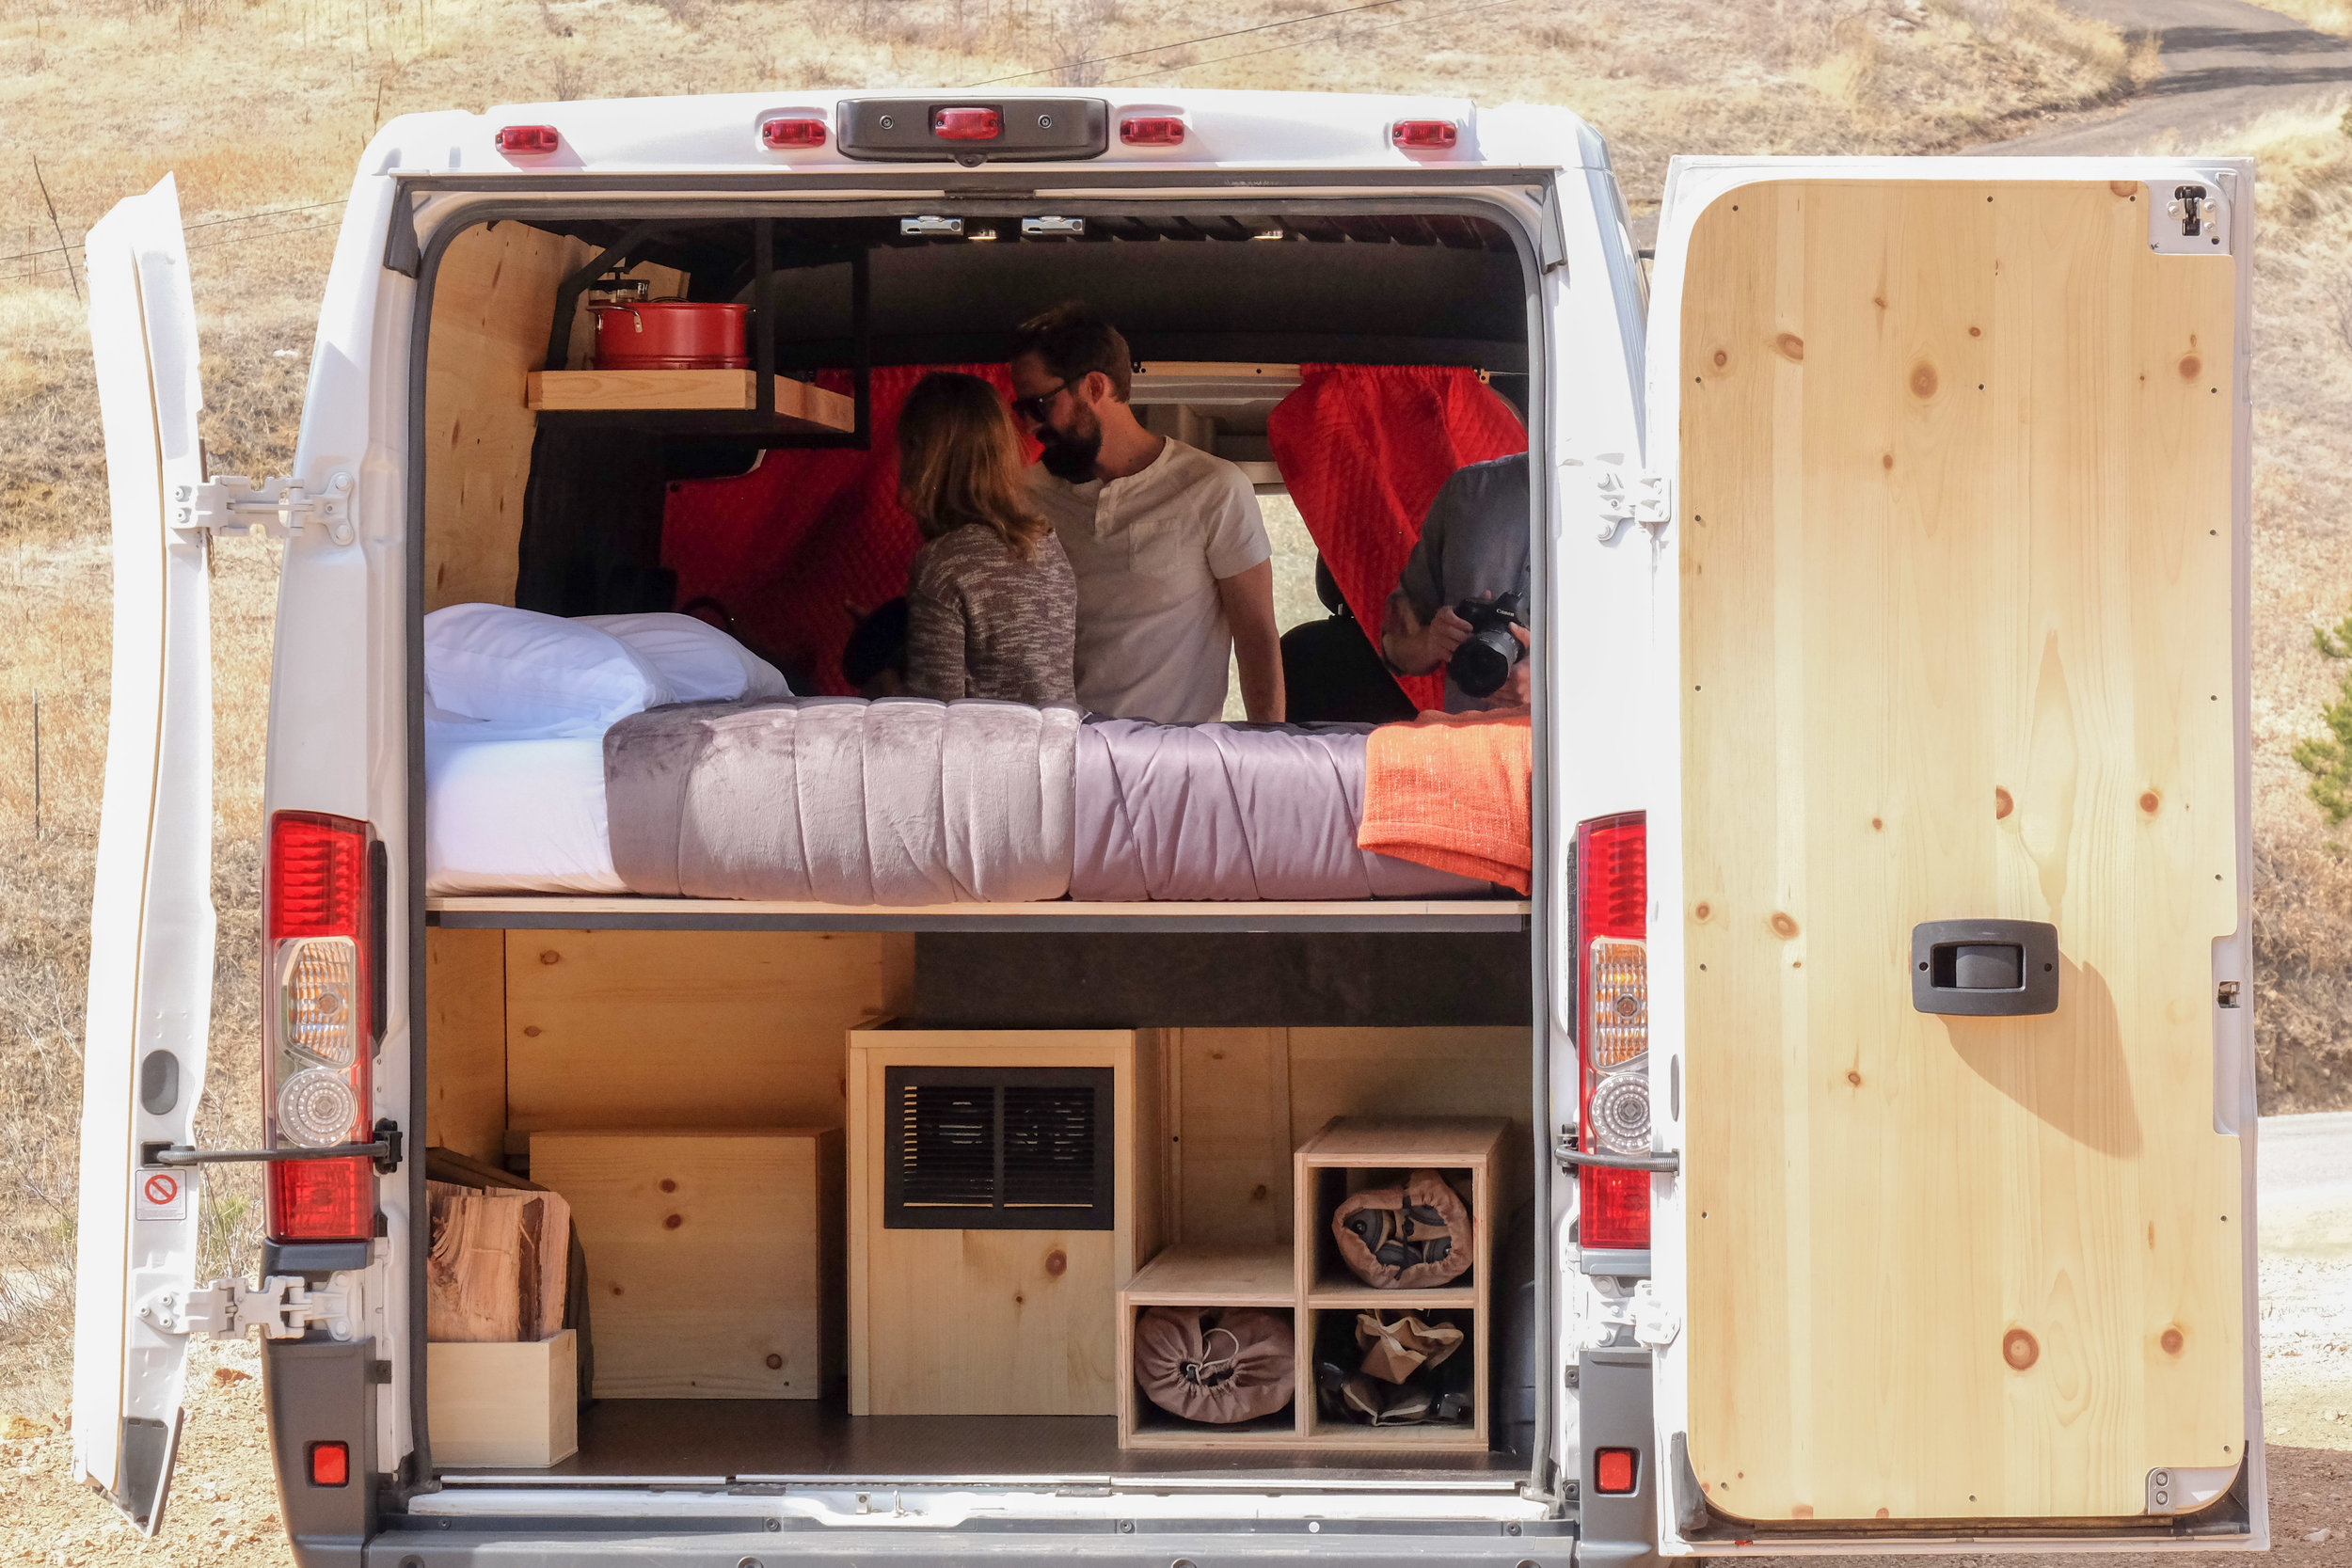 Open the back and you'll find a vast storage area to keep all of your getaway gear tucked in safely.